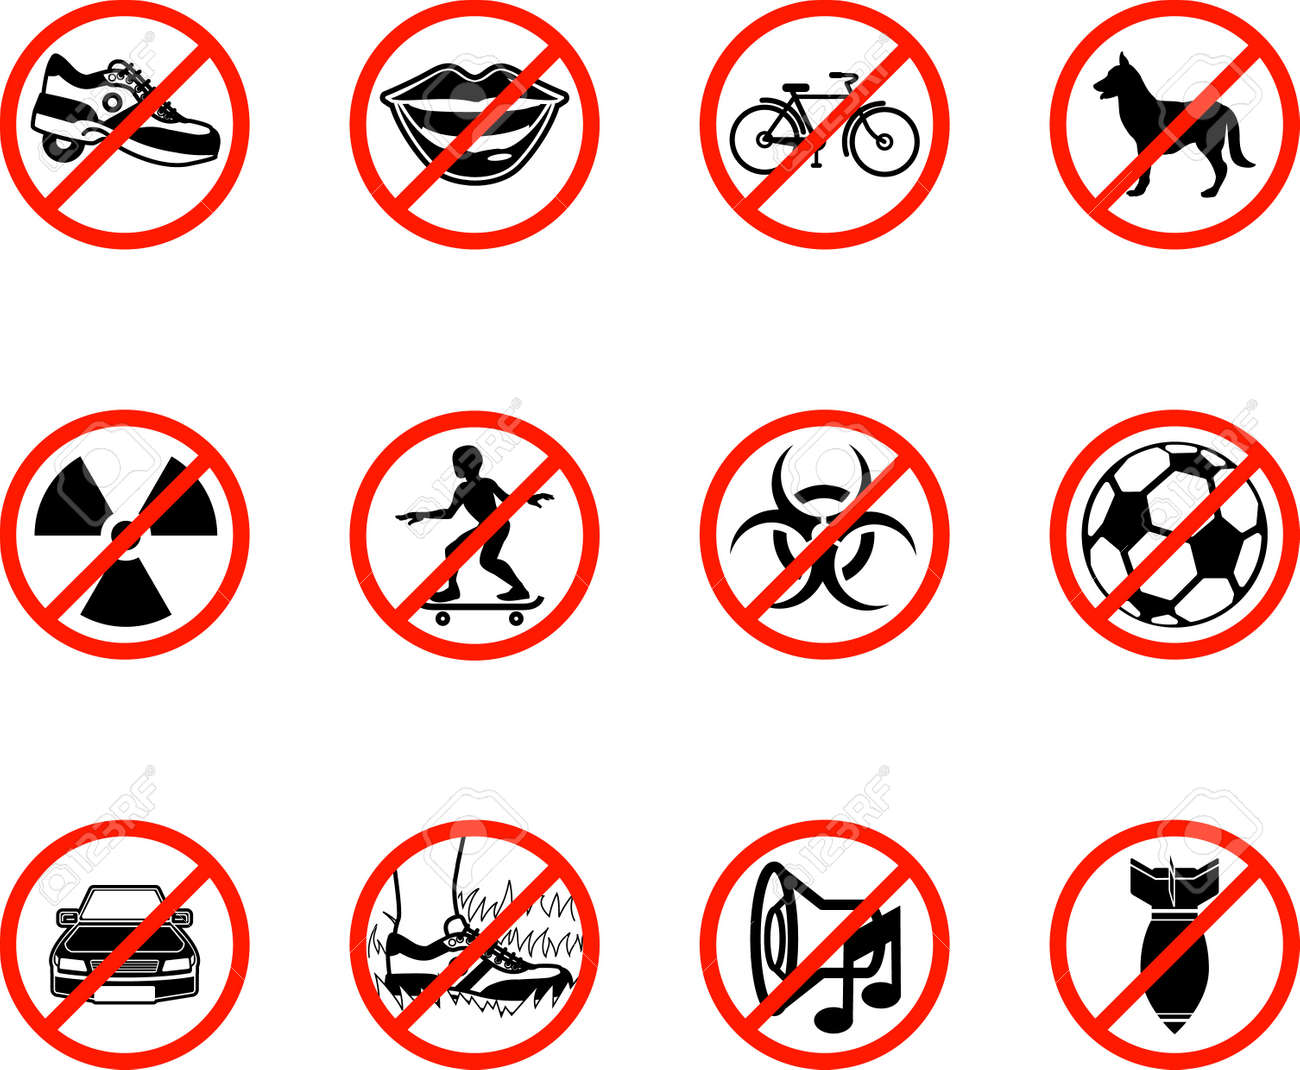 No icons; A series set of icons all outlining things that are prohibited or being called on to be banned! E.g. No talking, no cycling, no dogs, no ball games etc. Stock Vector - 2234765